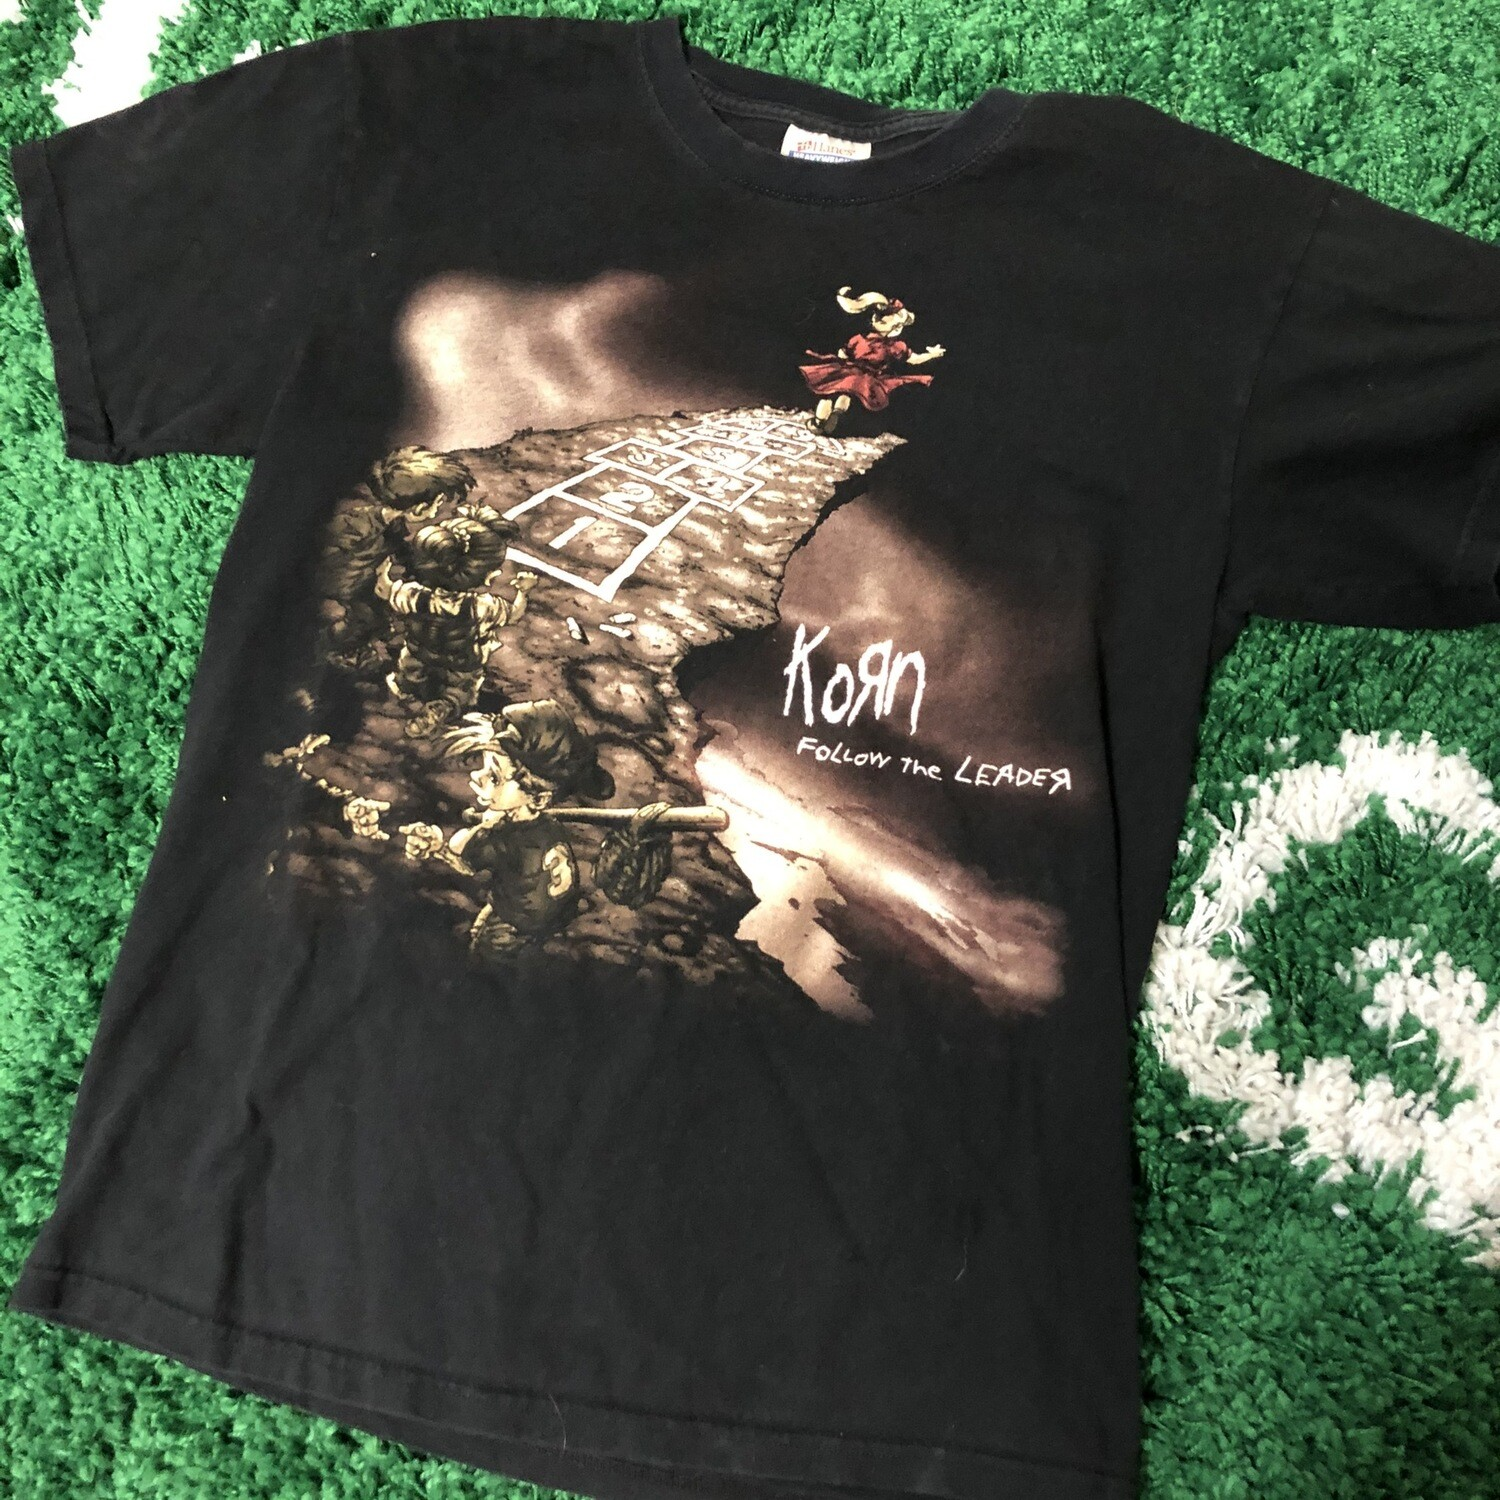 Korn Follow The Leader T-Shirt Size Small